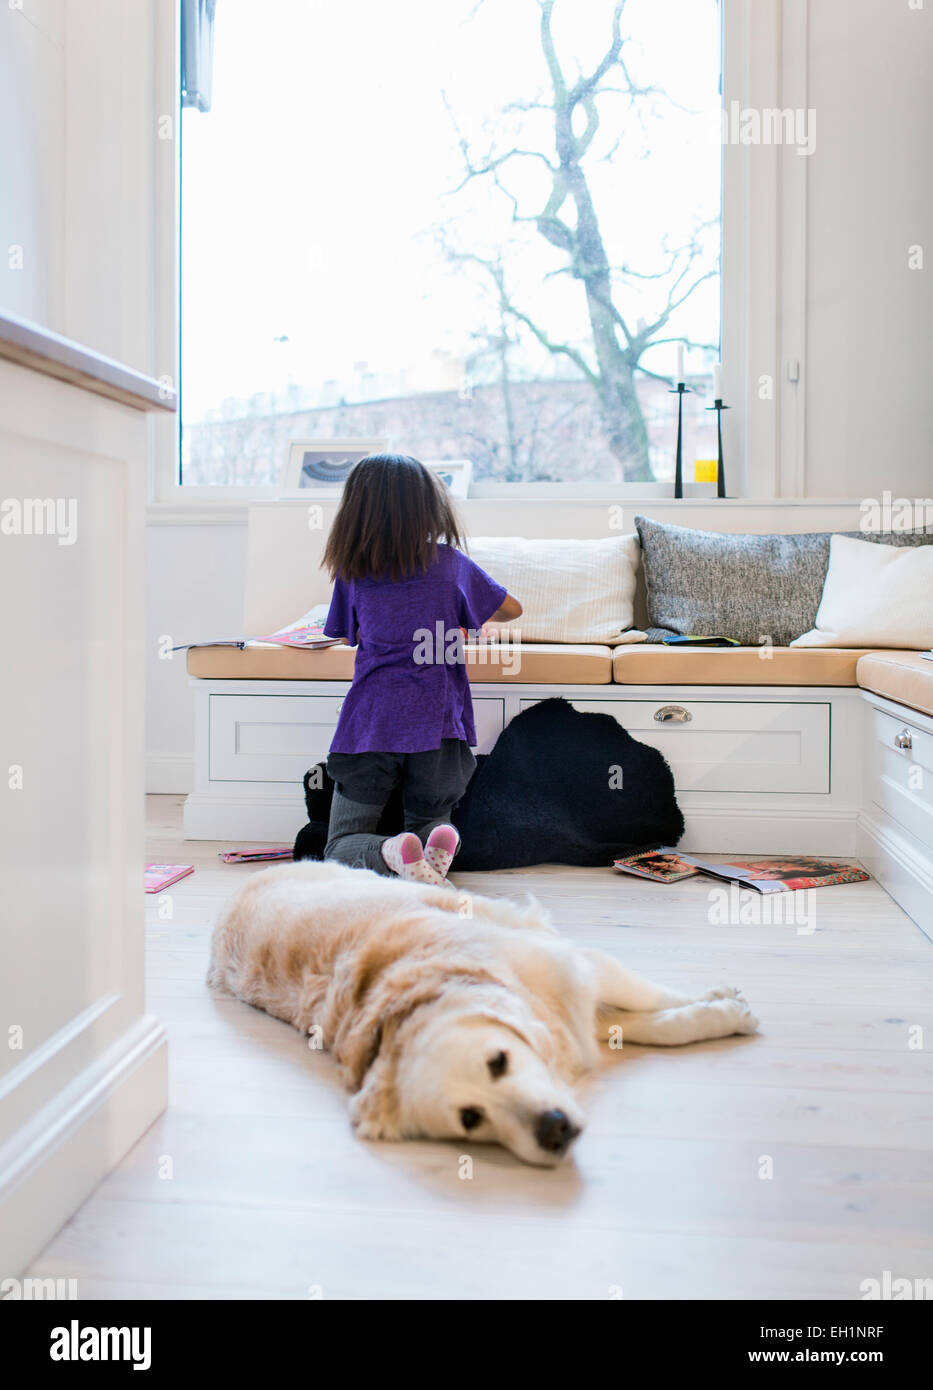 Girl studying in living room with dog relaxing in foreground - Stock Image